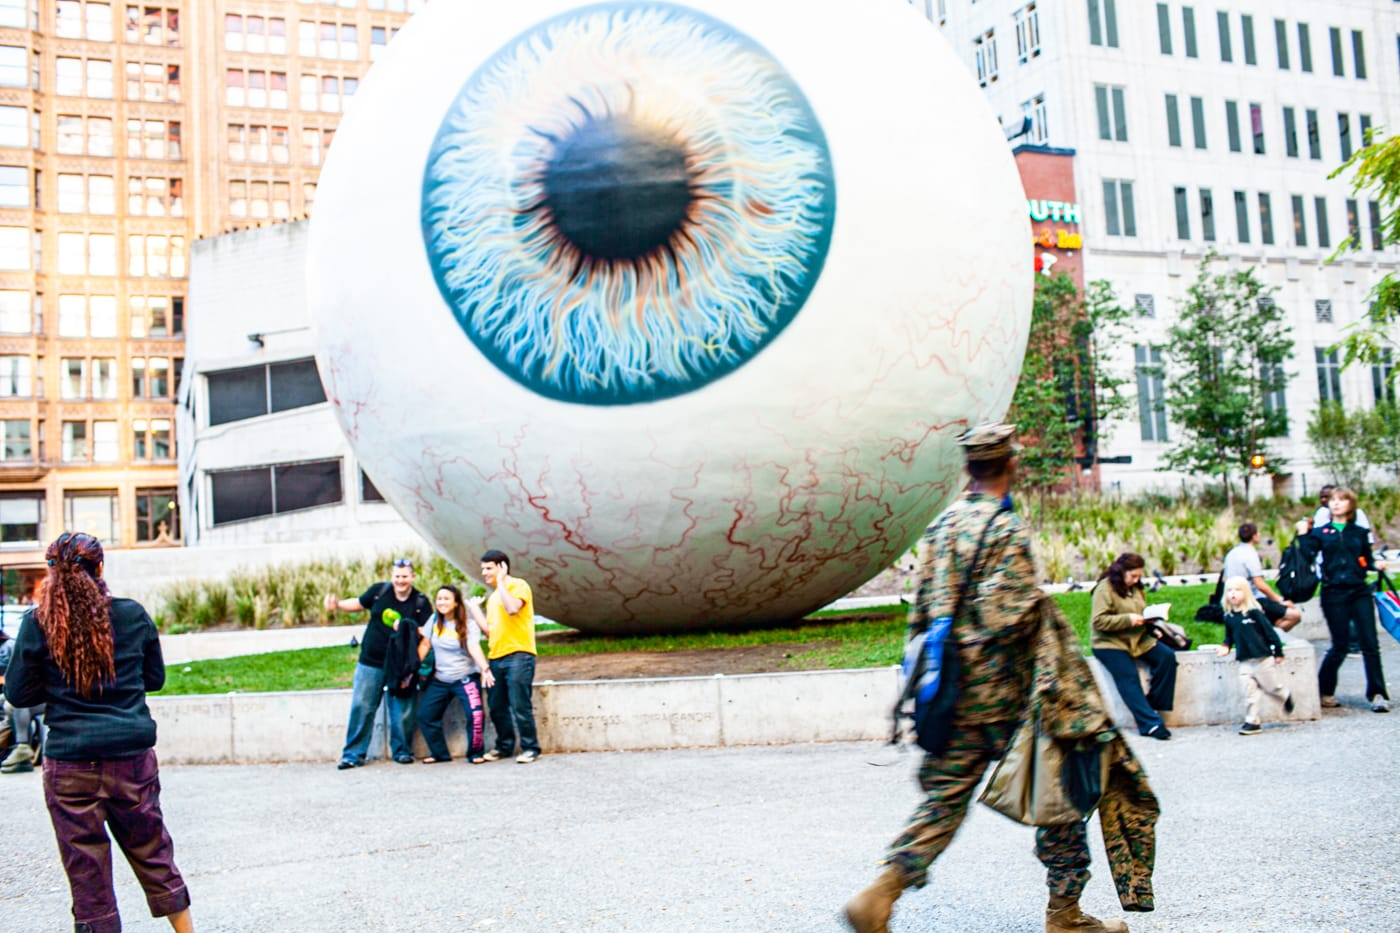 Tony Tasset's Eye - giant fiberglass eye in Chicago, Illinois in 2010 (Now in Dallas, Texas)